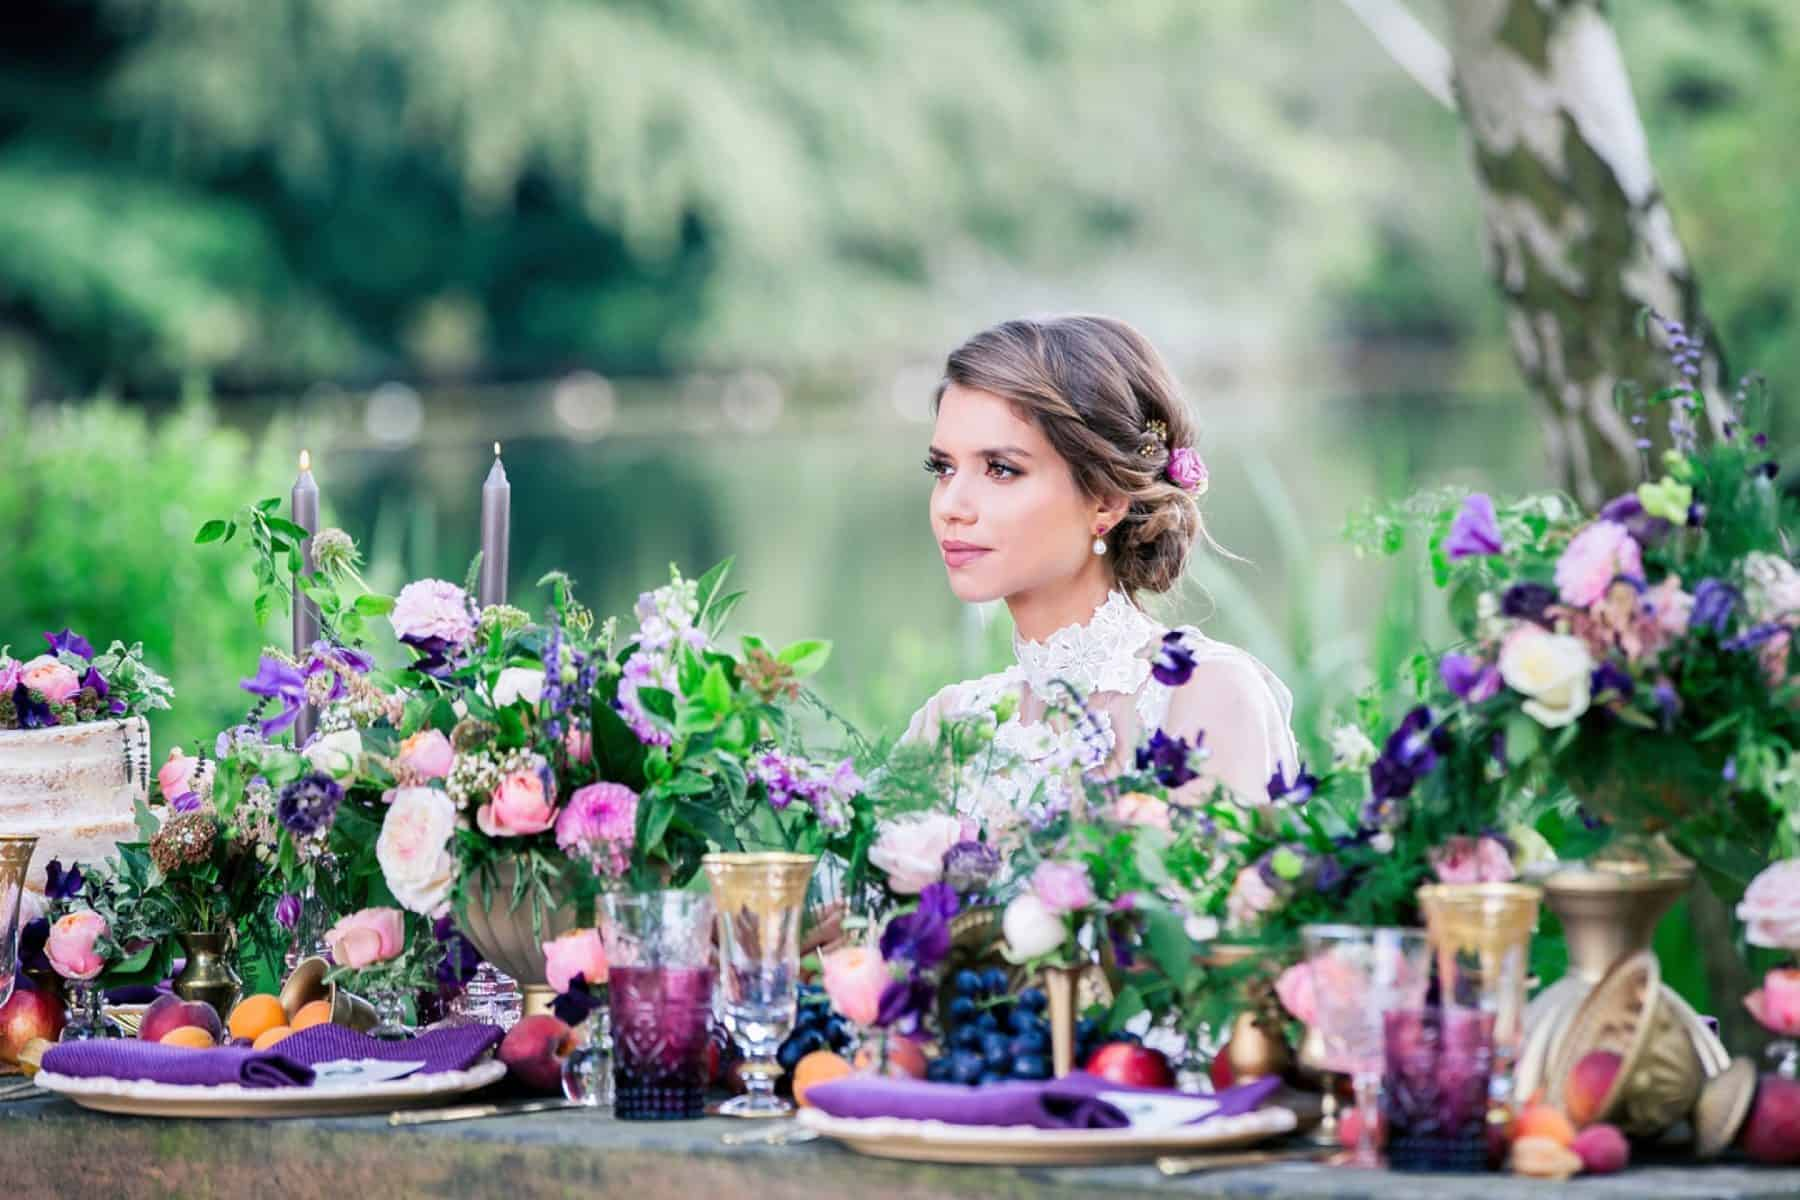 Bridal model seated at table among pink and purple flowers